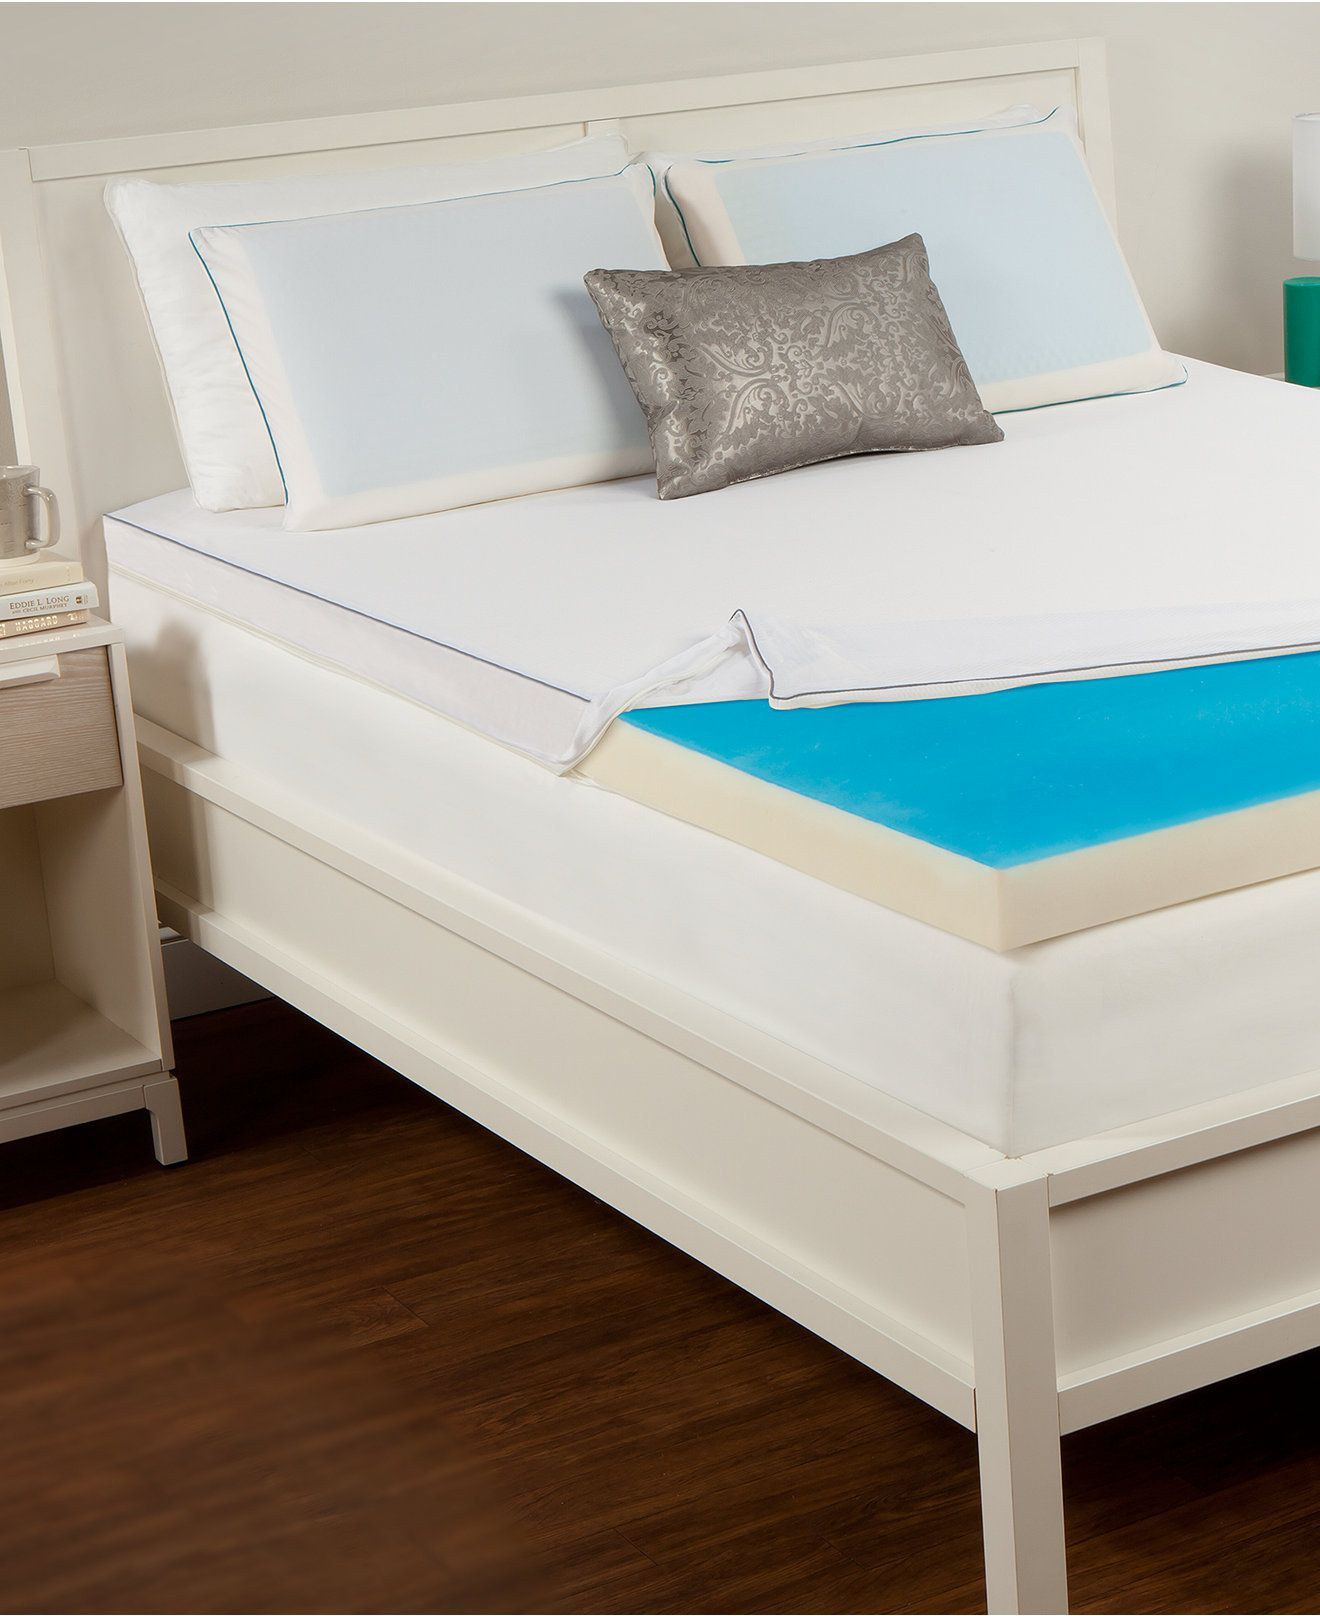 Portrayal Of Cooling Mattress Pad For Tempur Pedic That Will Make